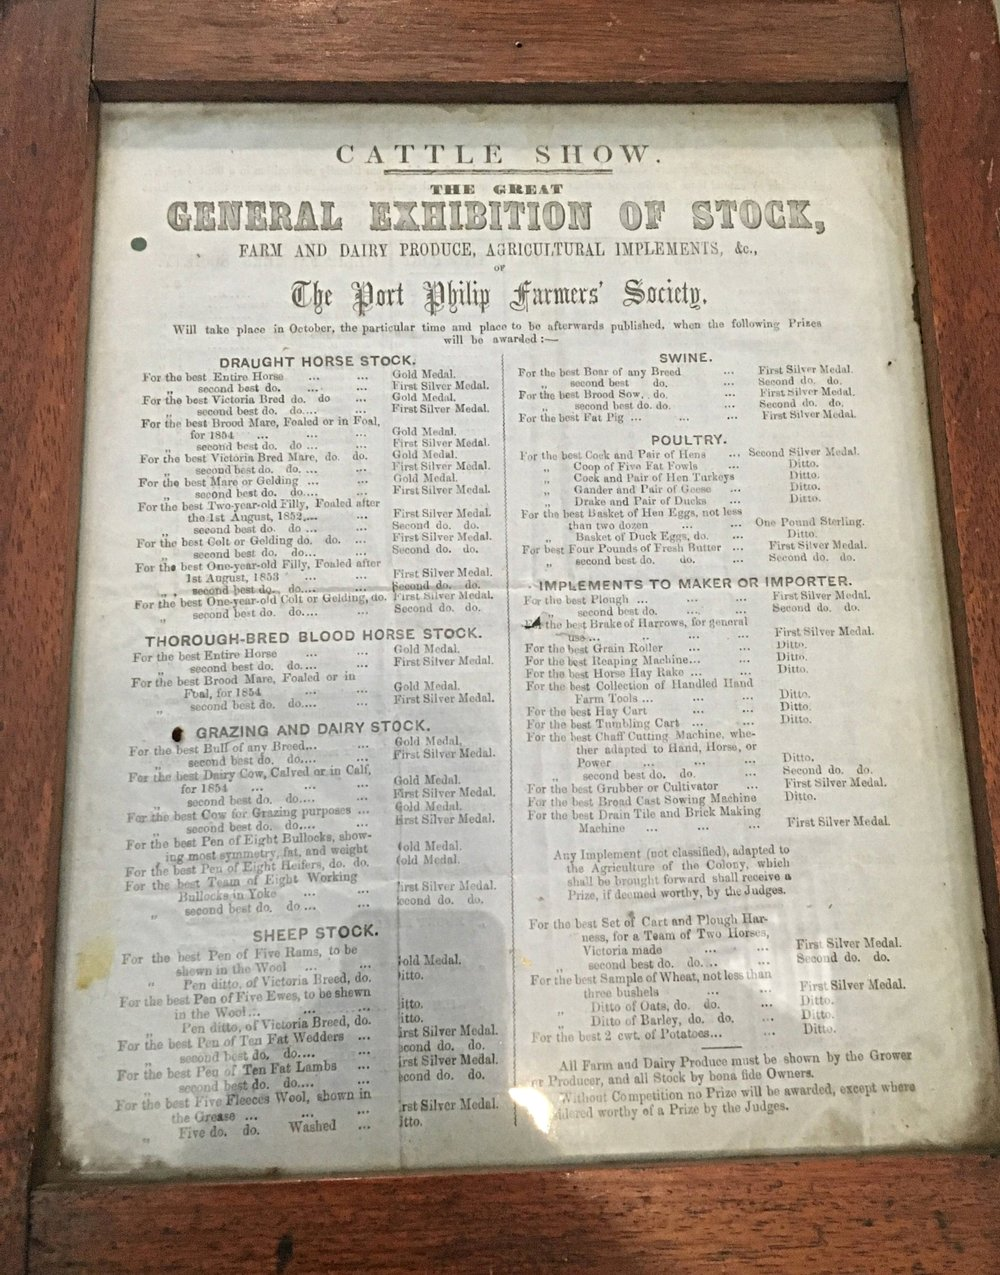 1848 Port Phillip Farmers' Society  The Great General Exhibition of Stock